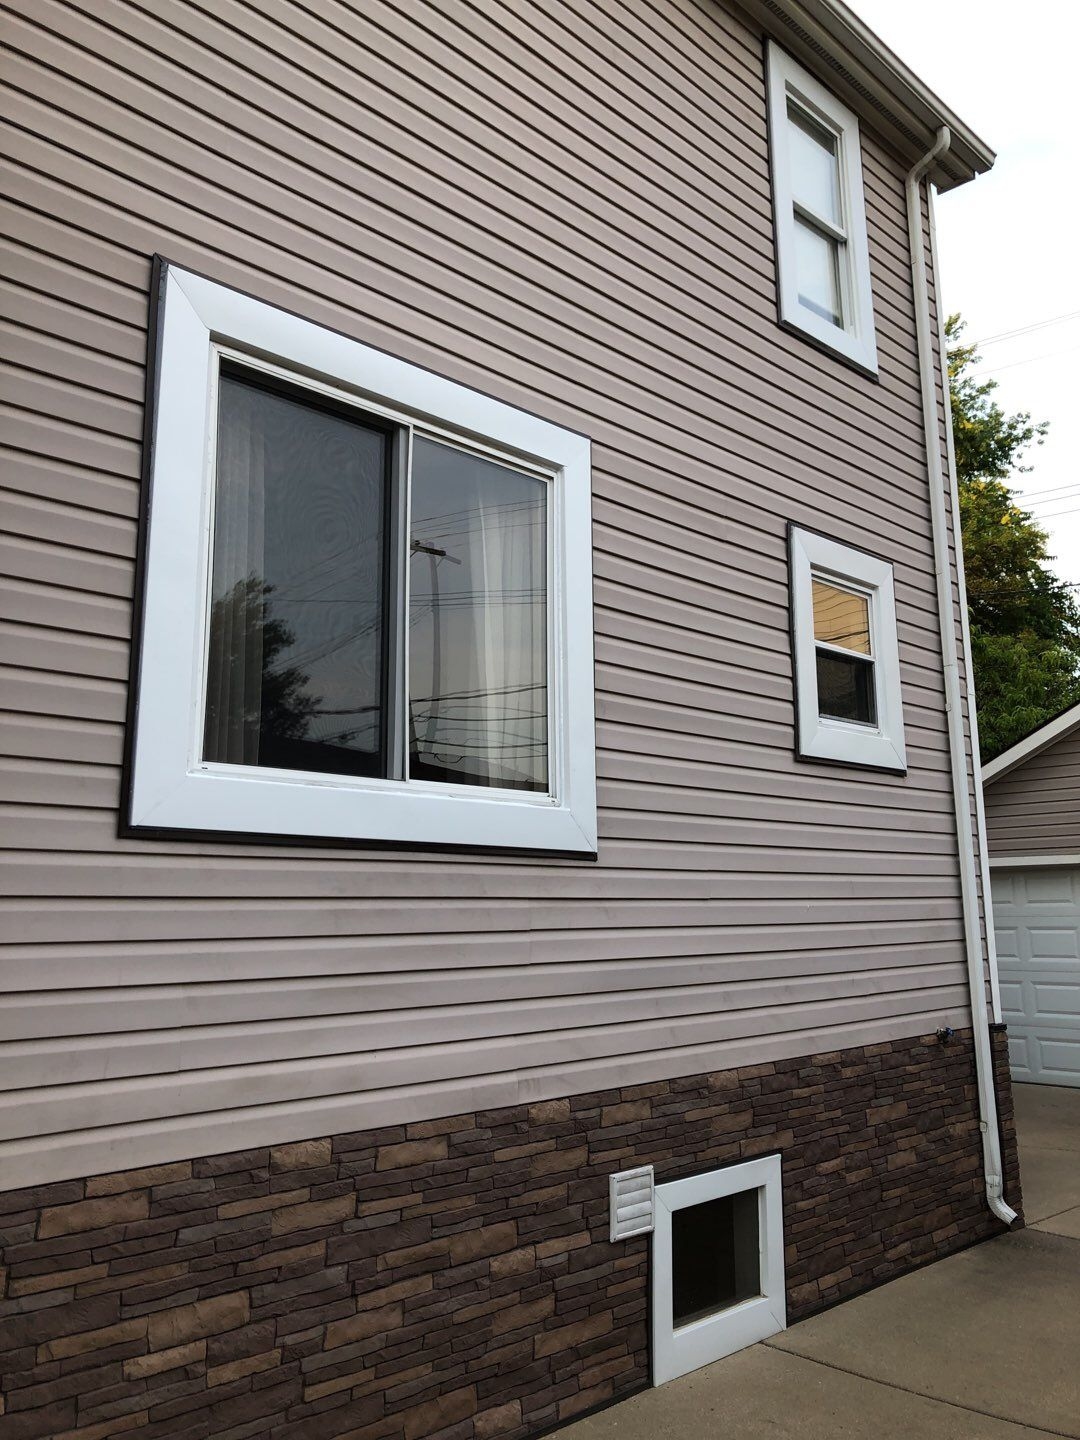 Royal Oak Siding and Brick